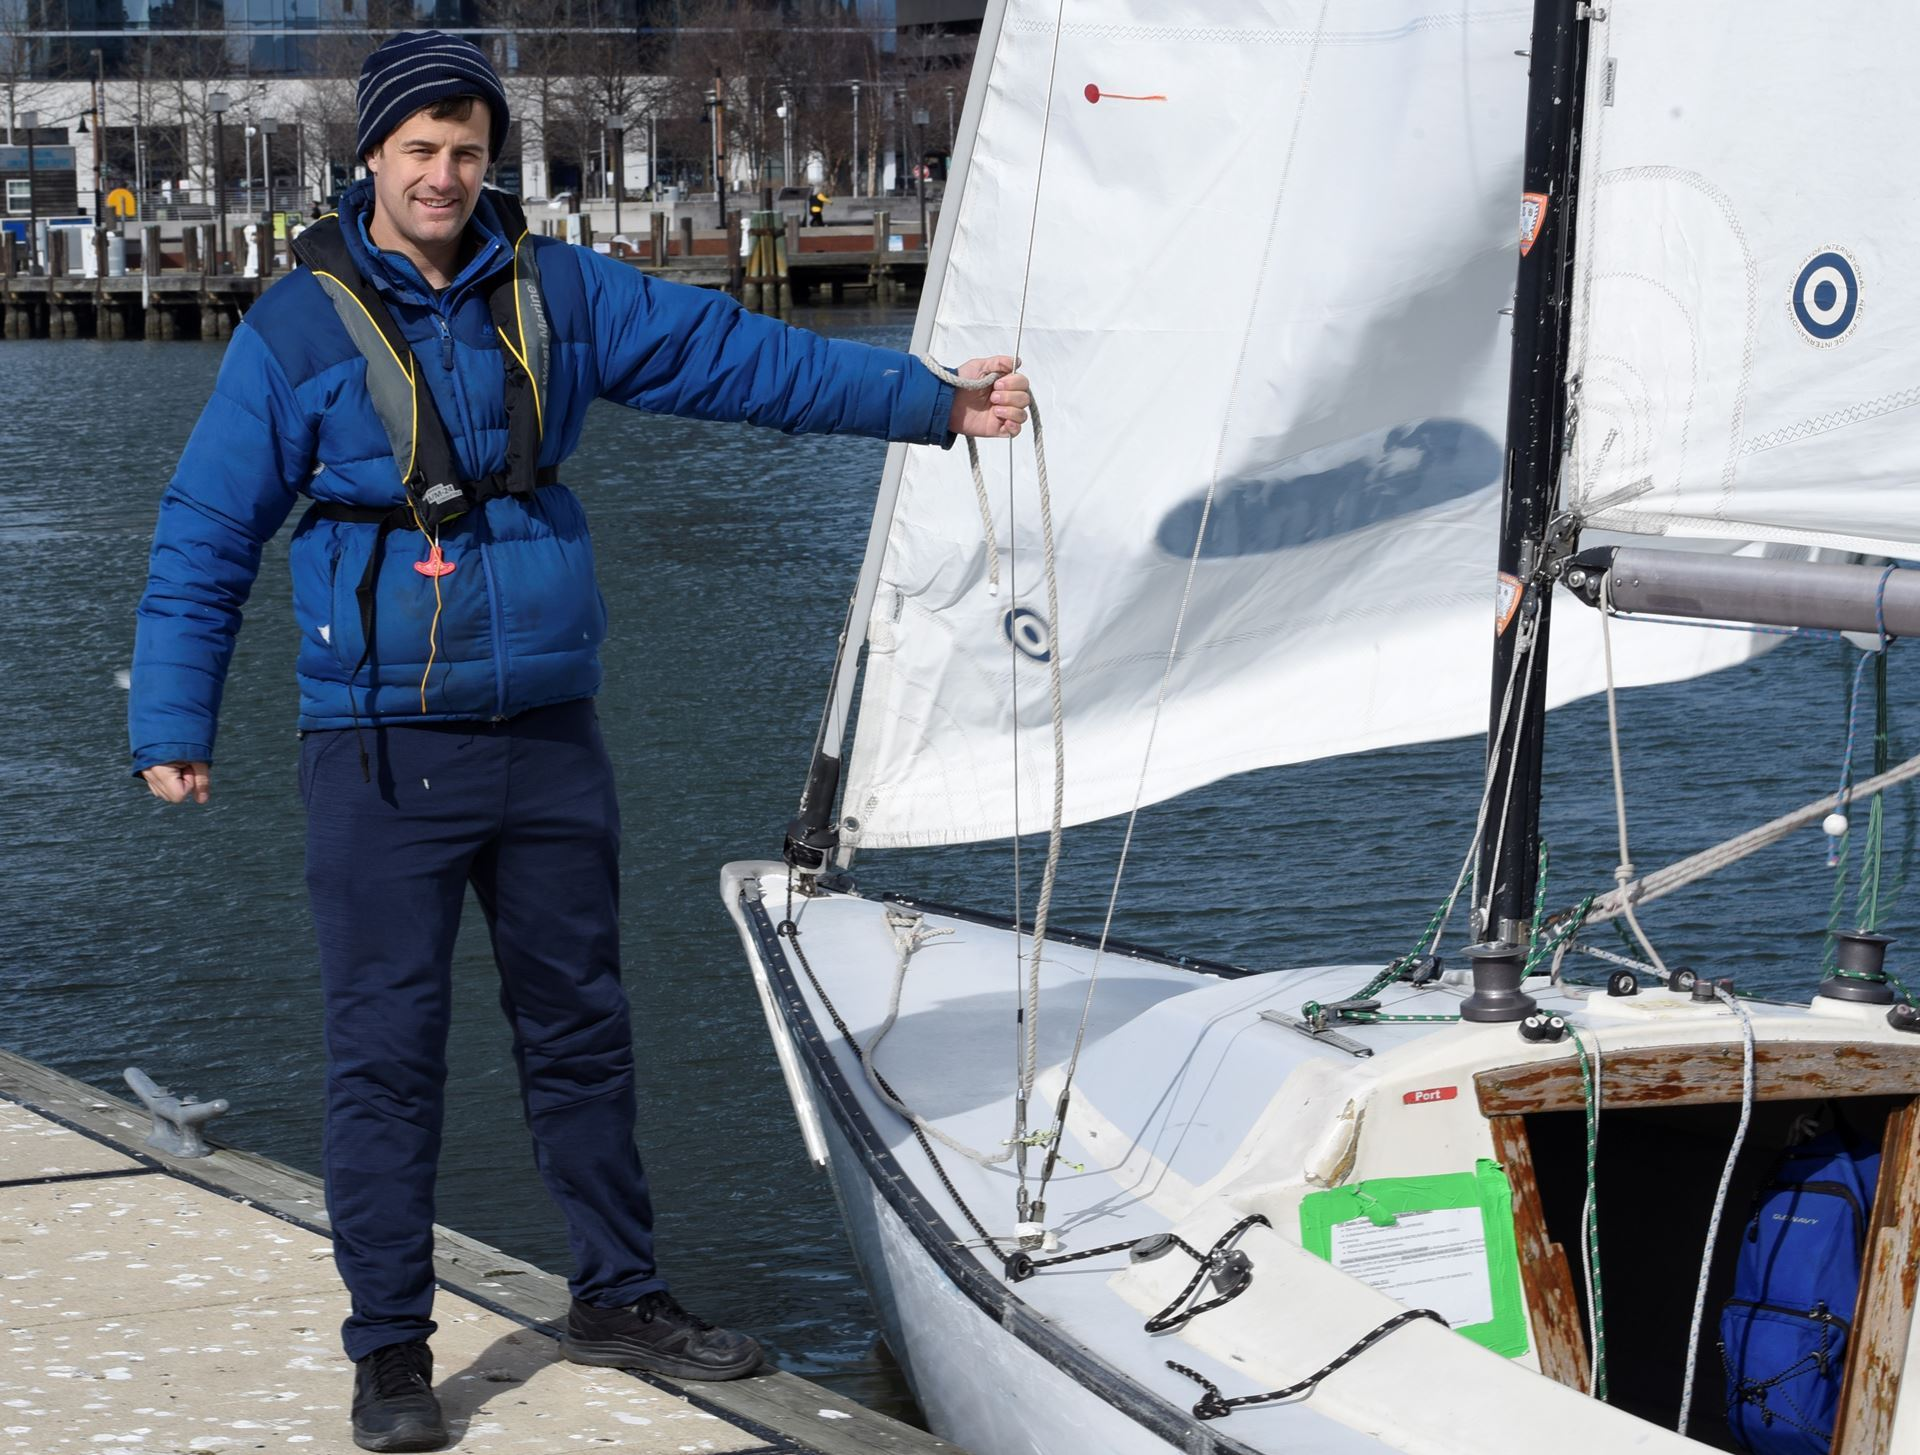 Instructor Graham waiting for you to Step Aboard our Sonar sailboat